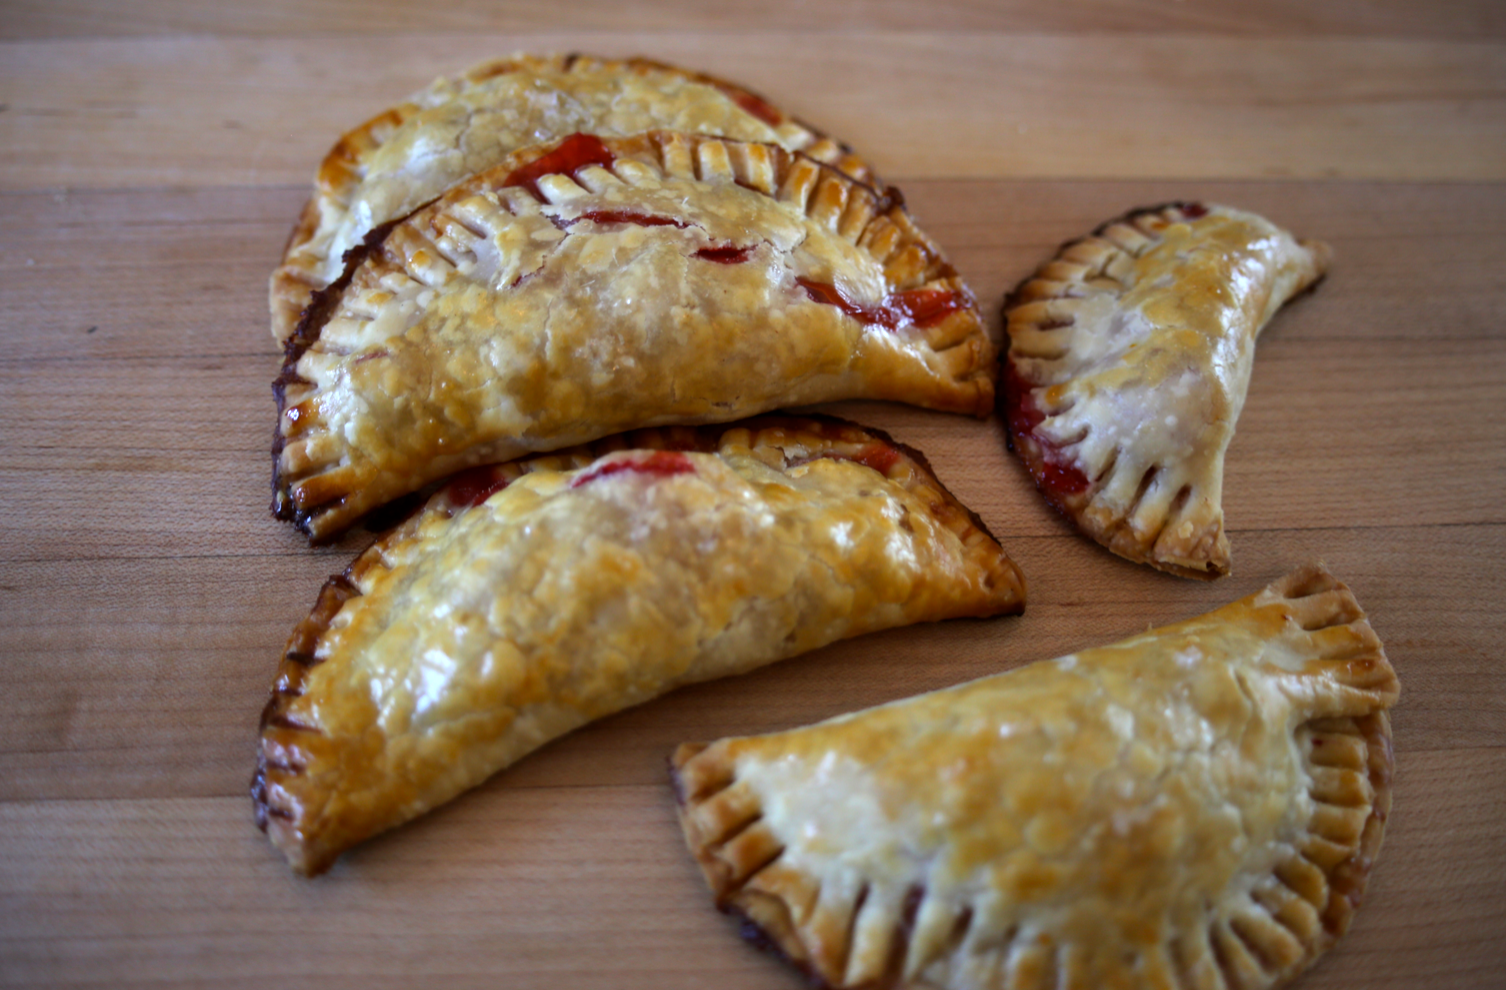 These yummy babes can be filled with just about any of your favorite fruit piefilling.